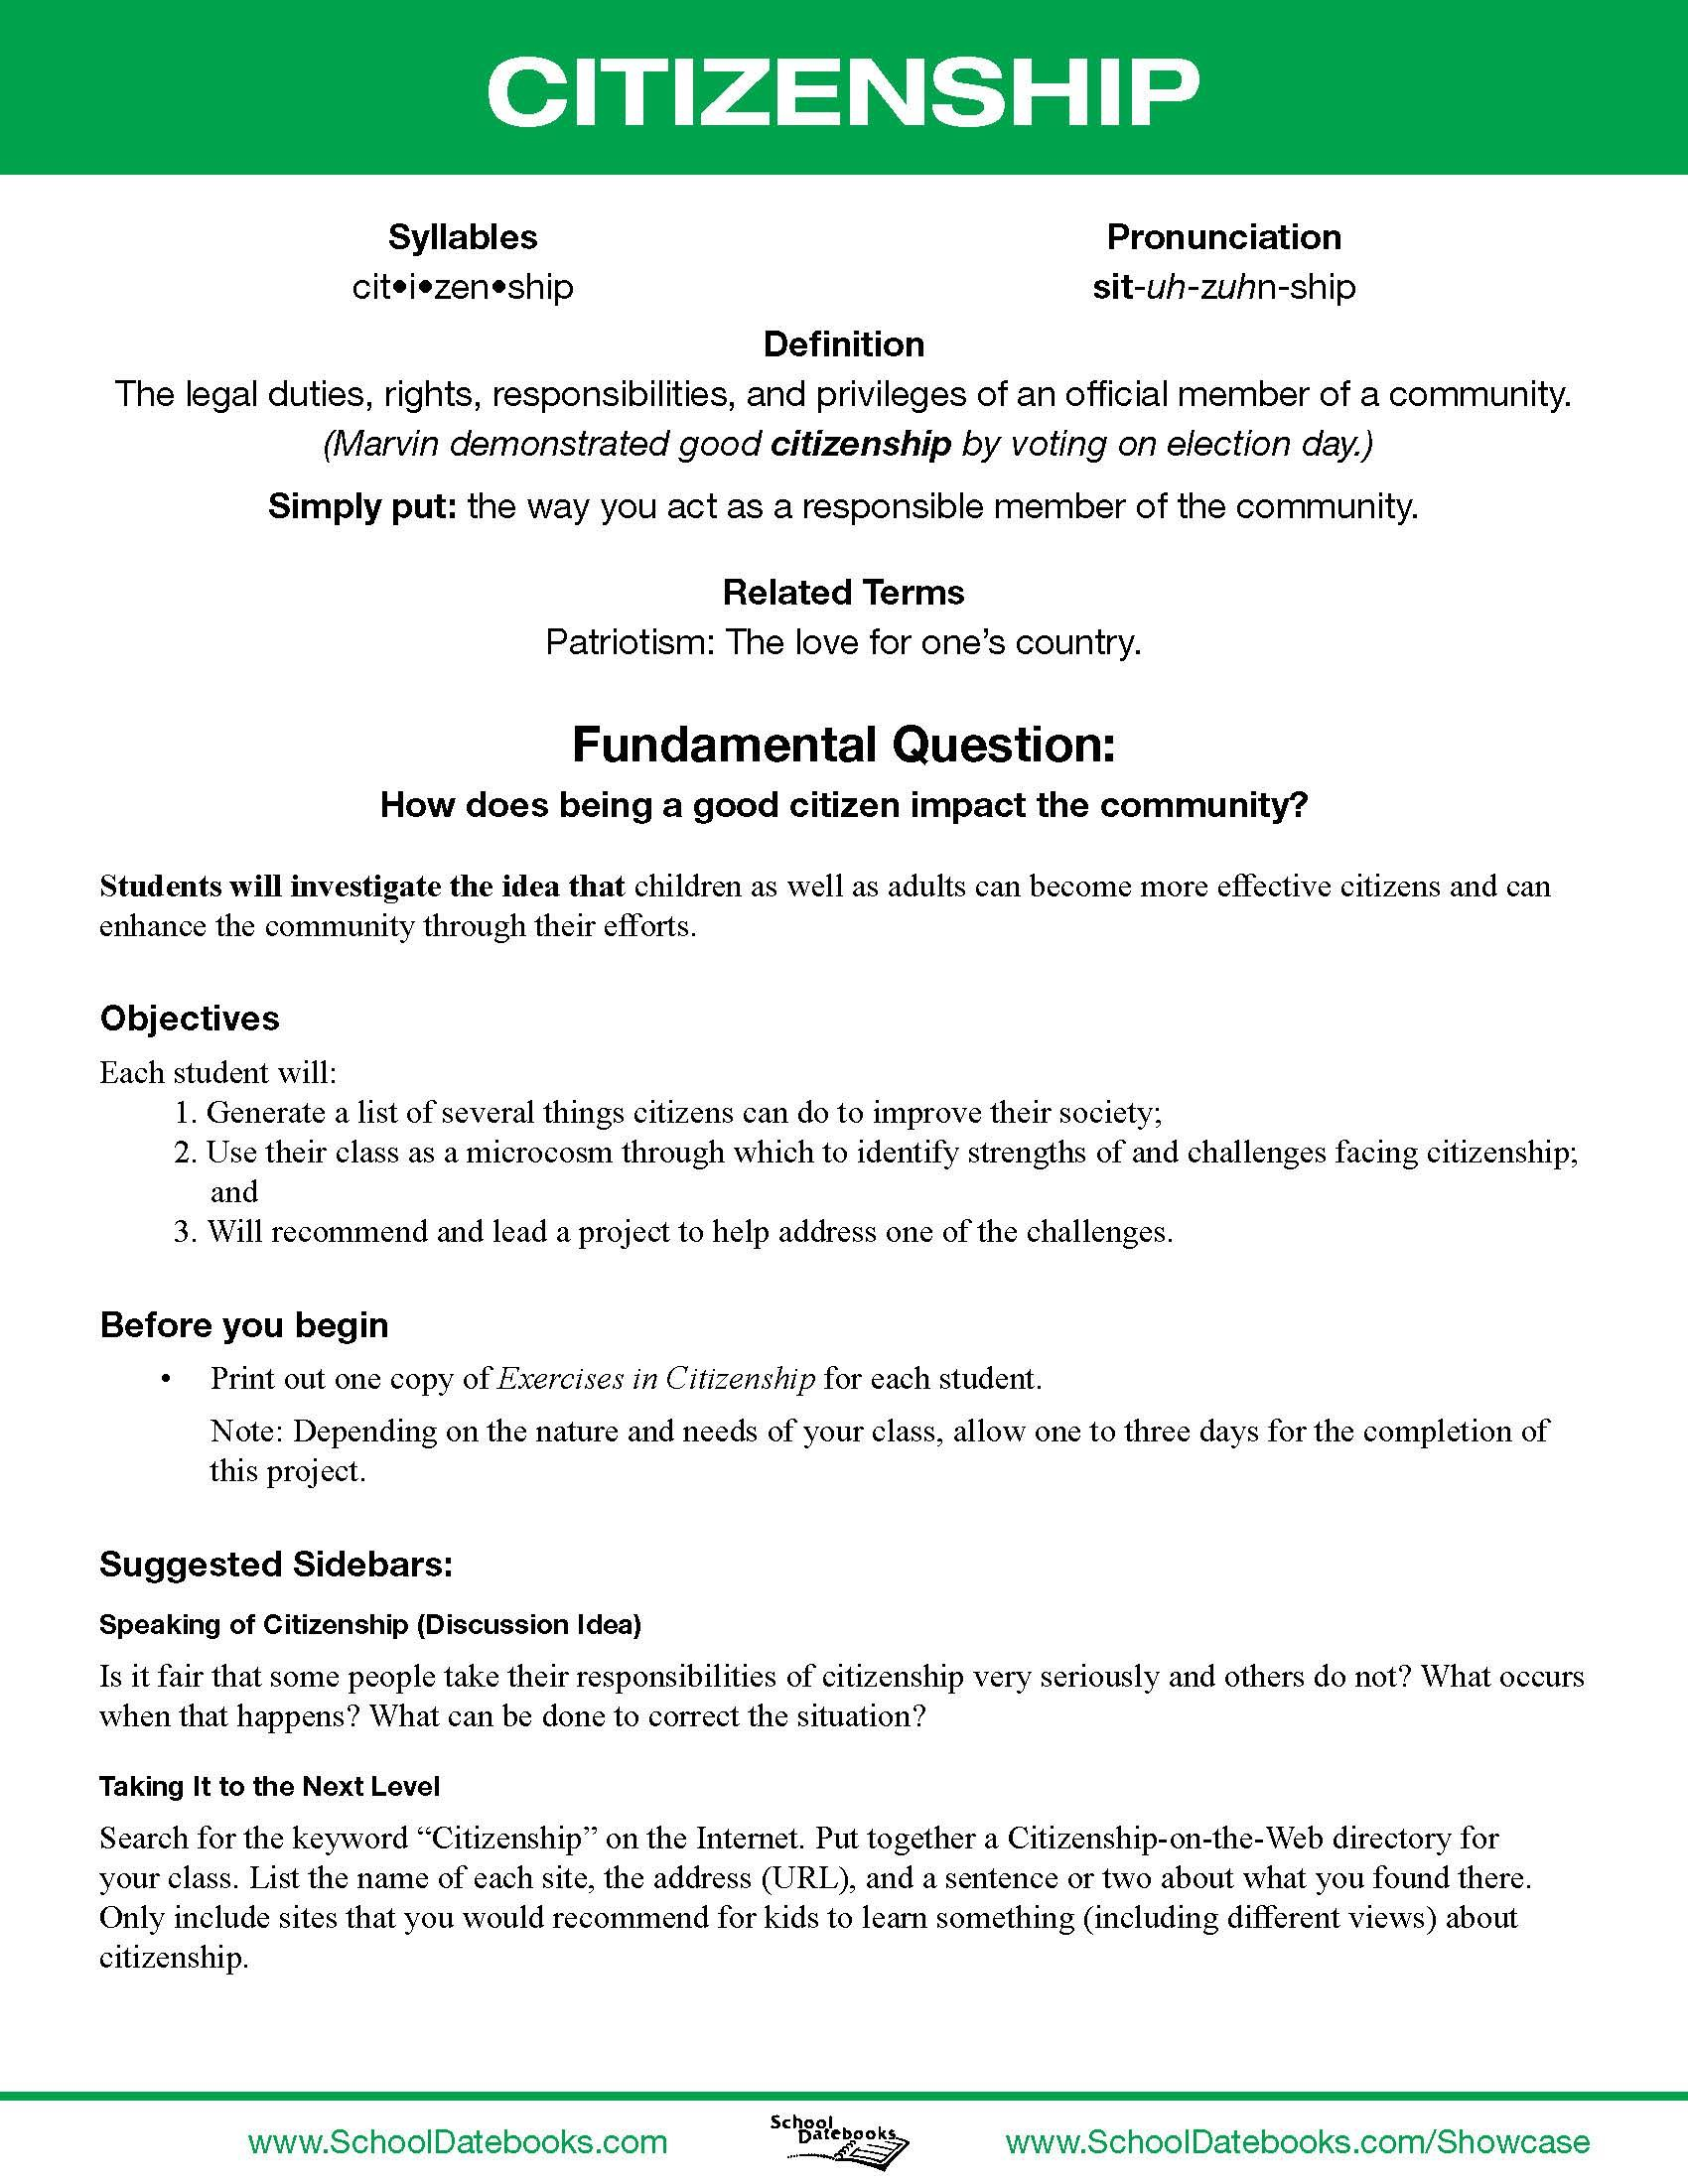 Free Worksheet Citizenship In The Community Answers To The Worksheet 1000 images about social studies on pinterest character education emergent readers and digital citizenship posters